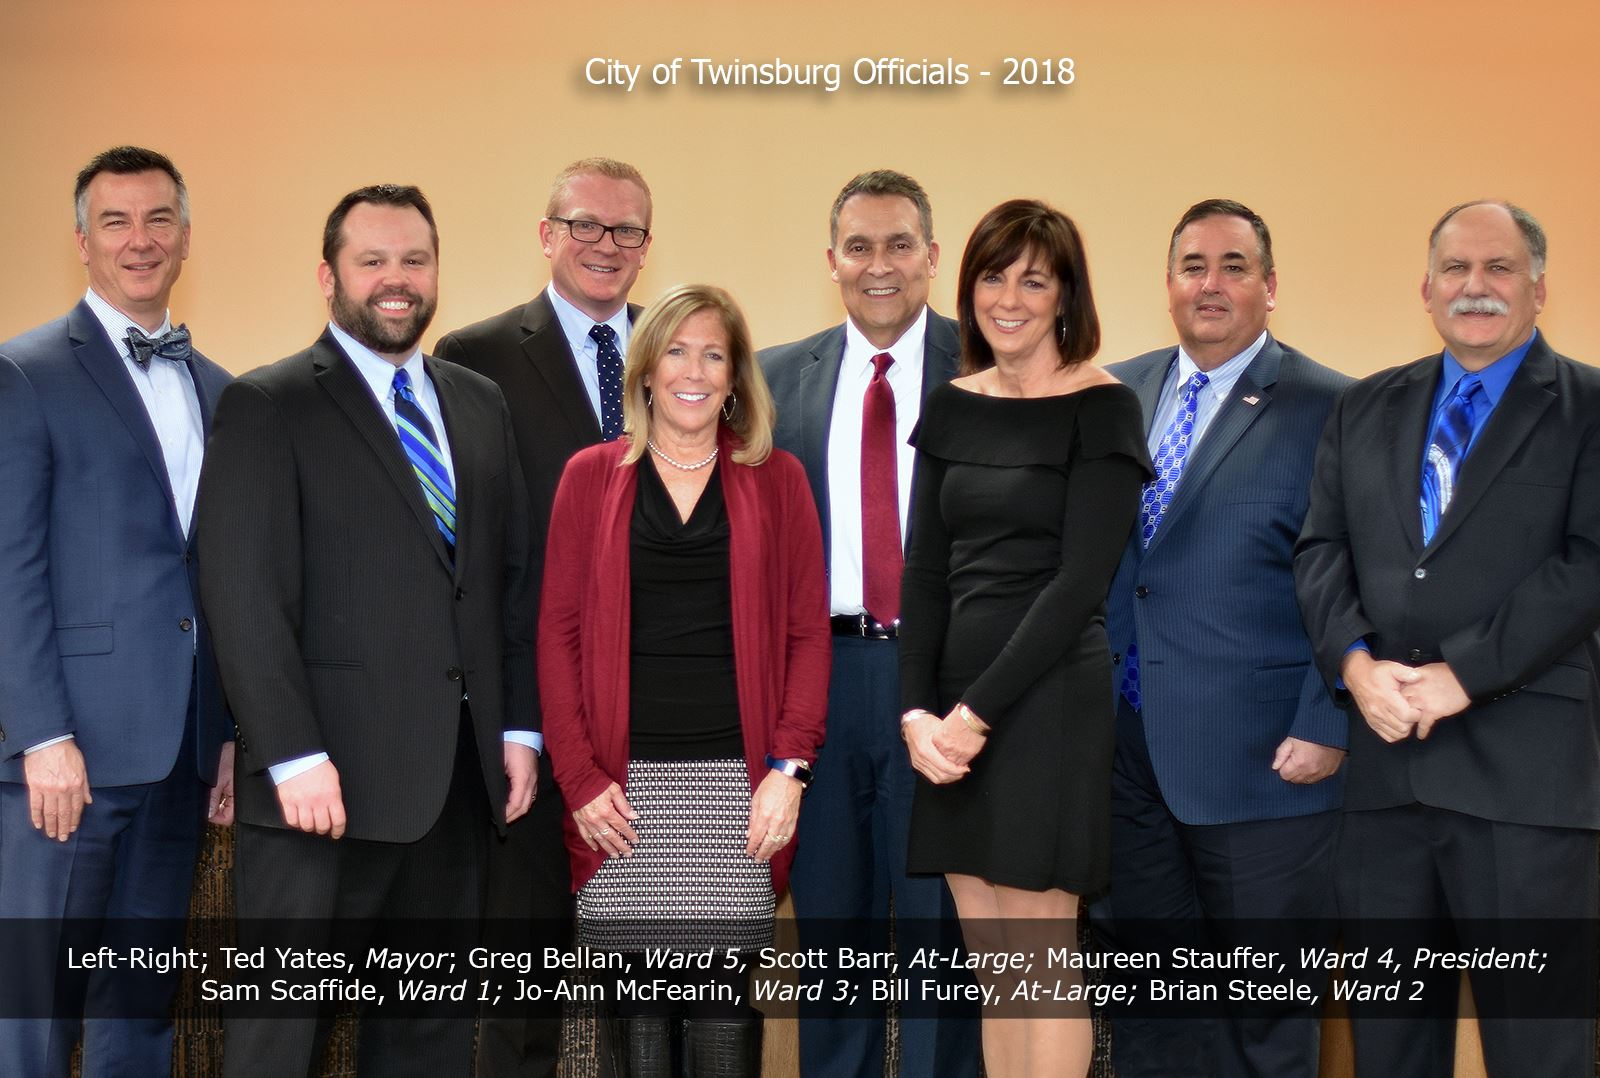 City of Twinsburg Officials - 2018, Left-Right; Ted Yates, Mayor; Greg Bellan, Ward 5, Scott Barr, A